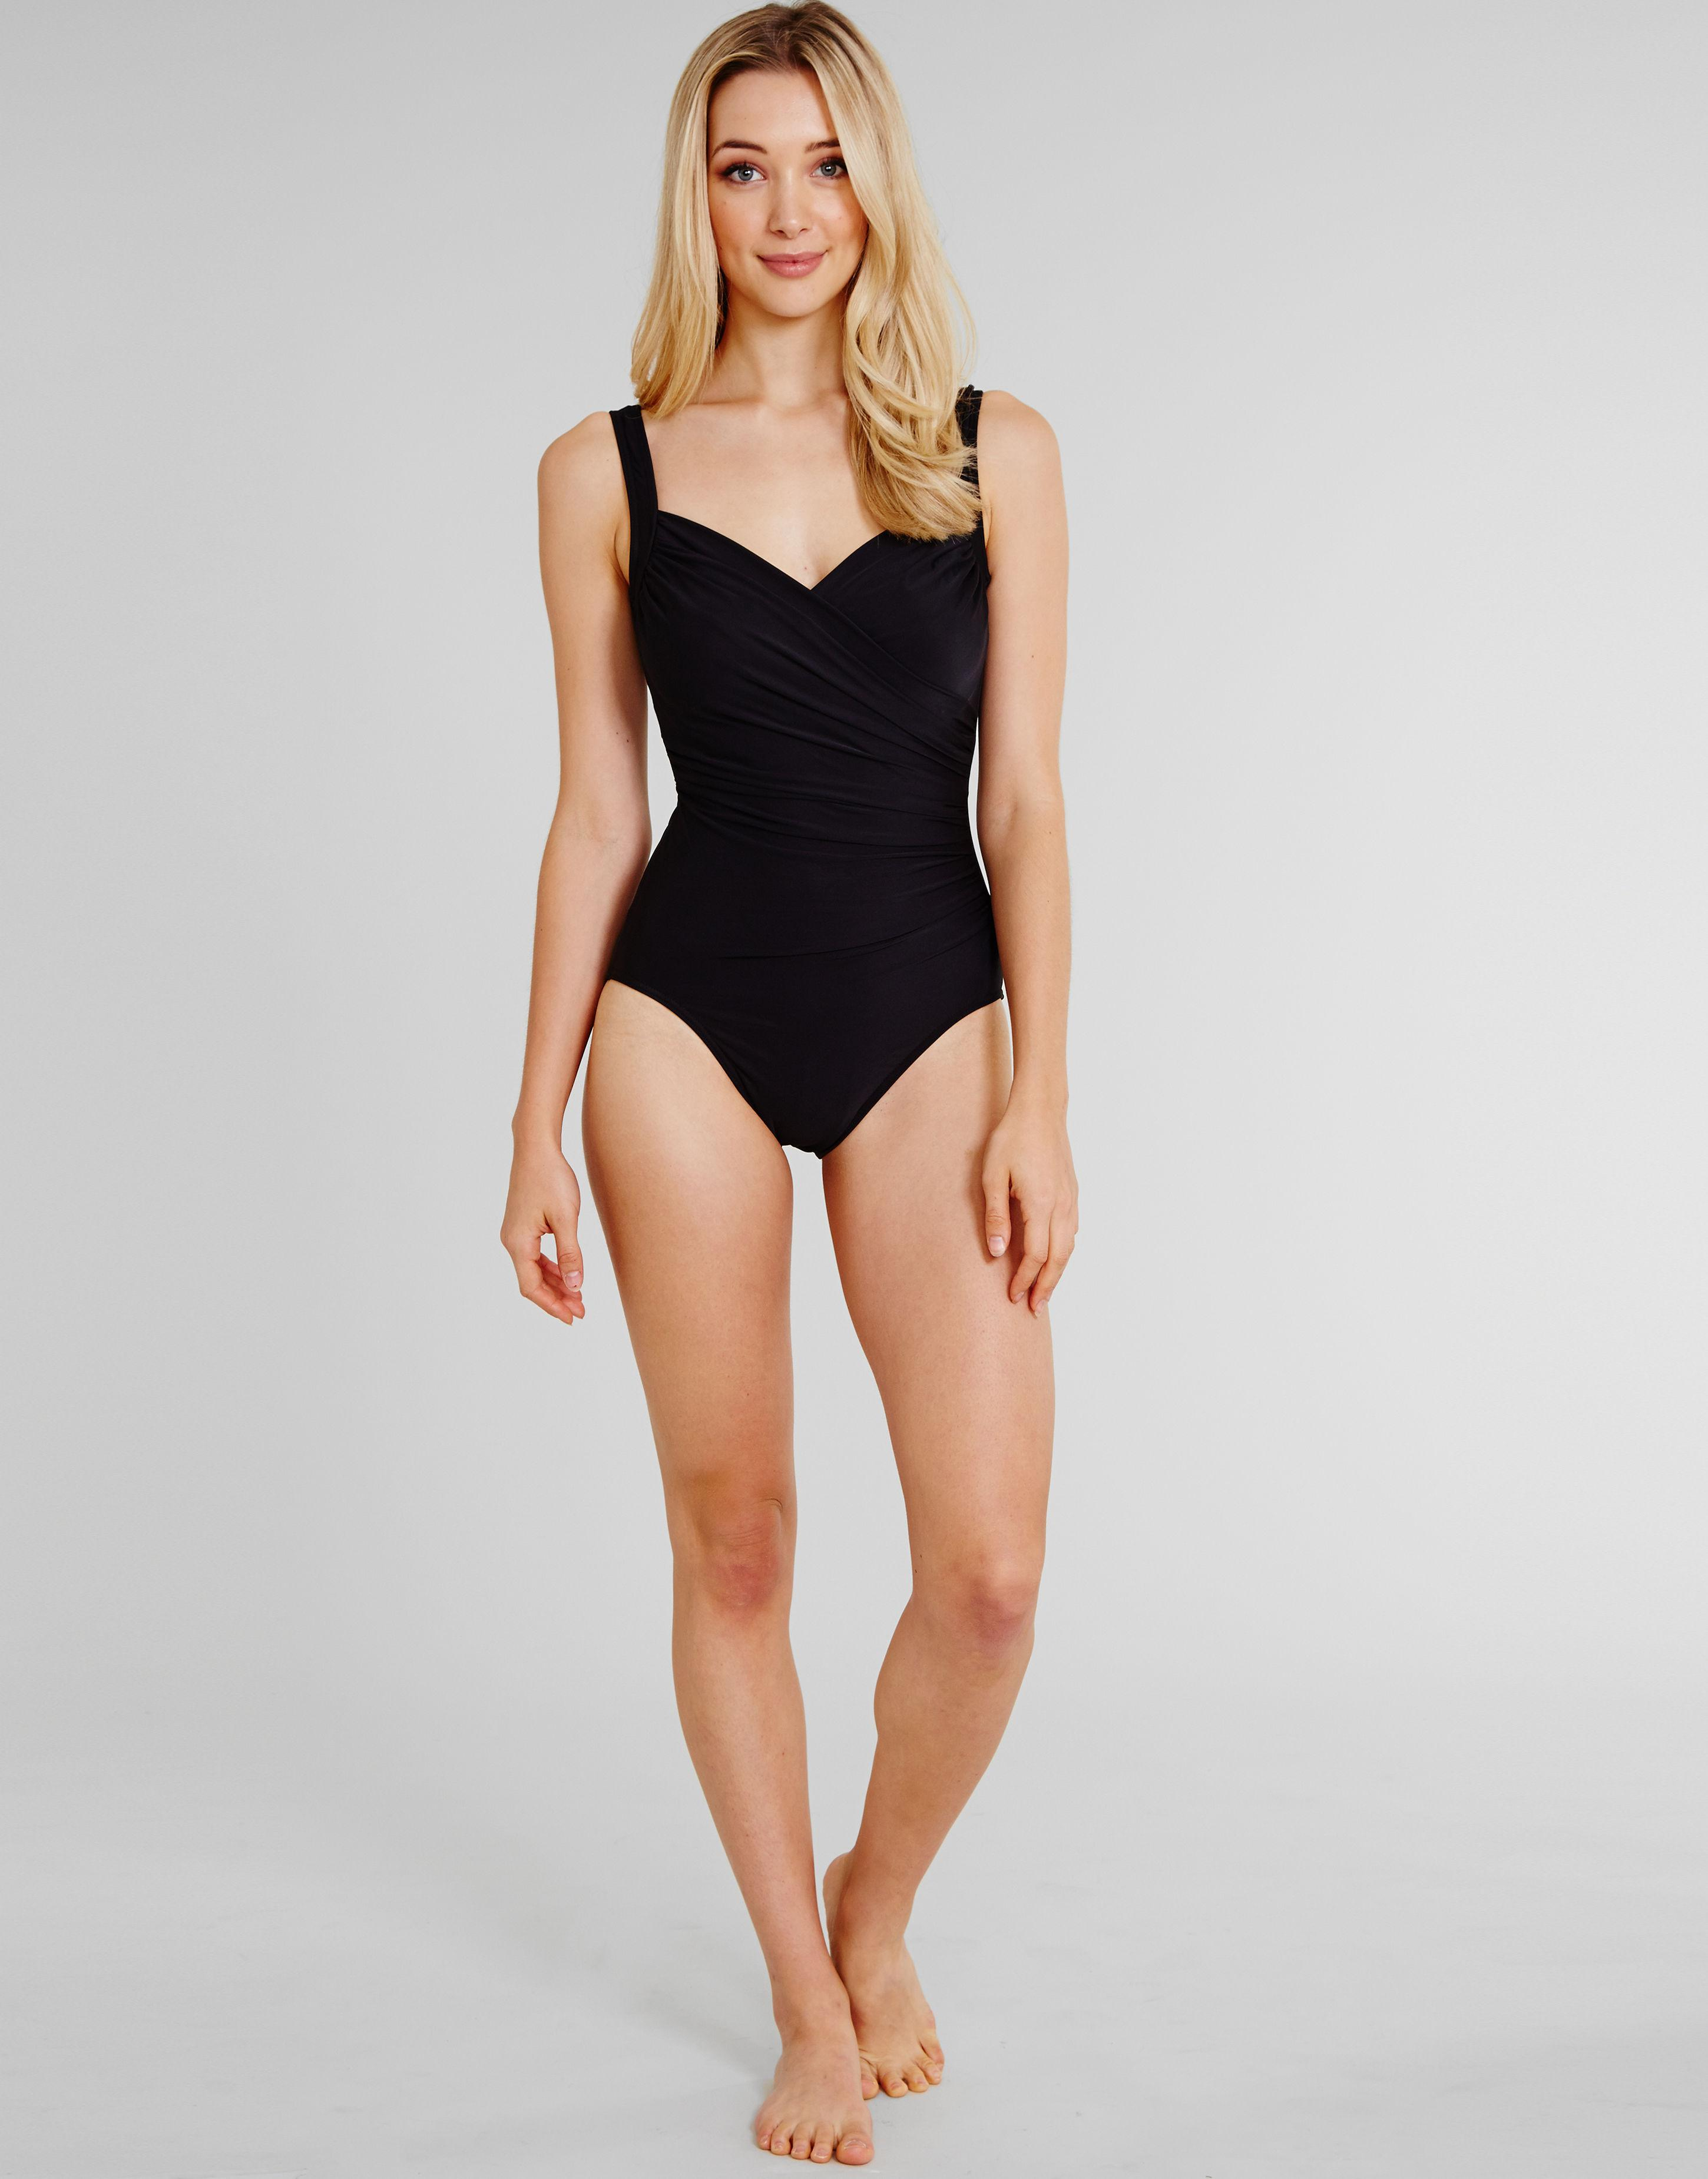 70b35b03bd0 Miraclesuit Must Haves Sanibel Underwired Firm Control Swimsuit in Black -  Lyst